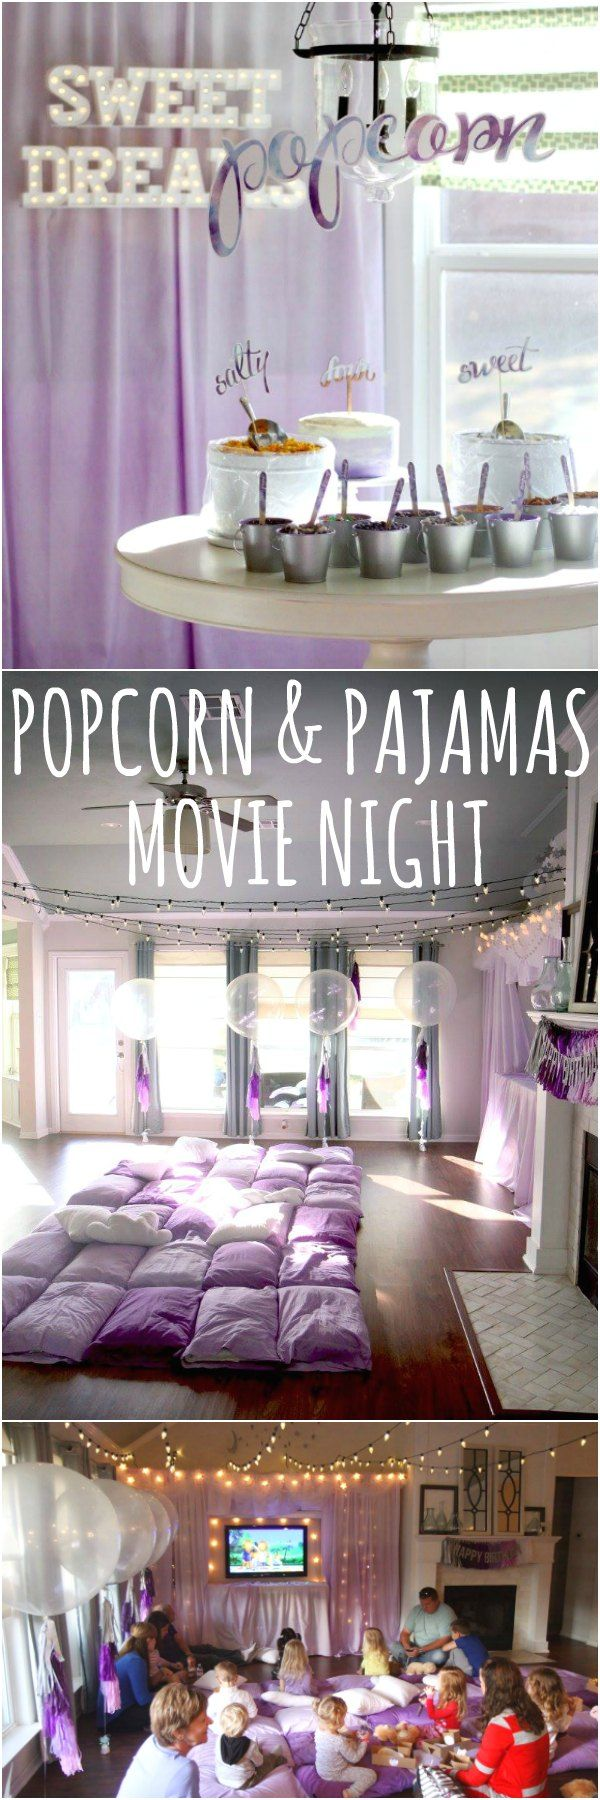 Cutest POPCORN & PAJAMAS movie night birthday party for kids a little too young for sleepovers. Favors were flashlights and teddy bears. Too cute! – Melanie Bongiorno